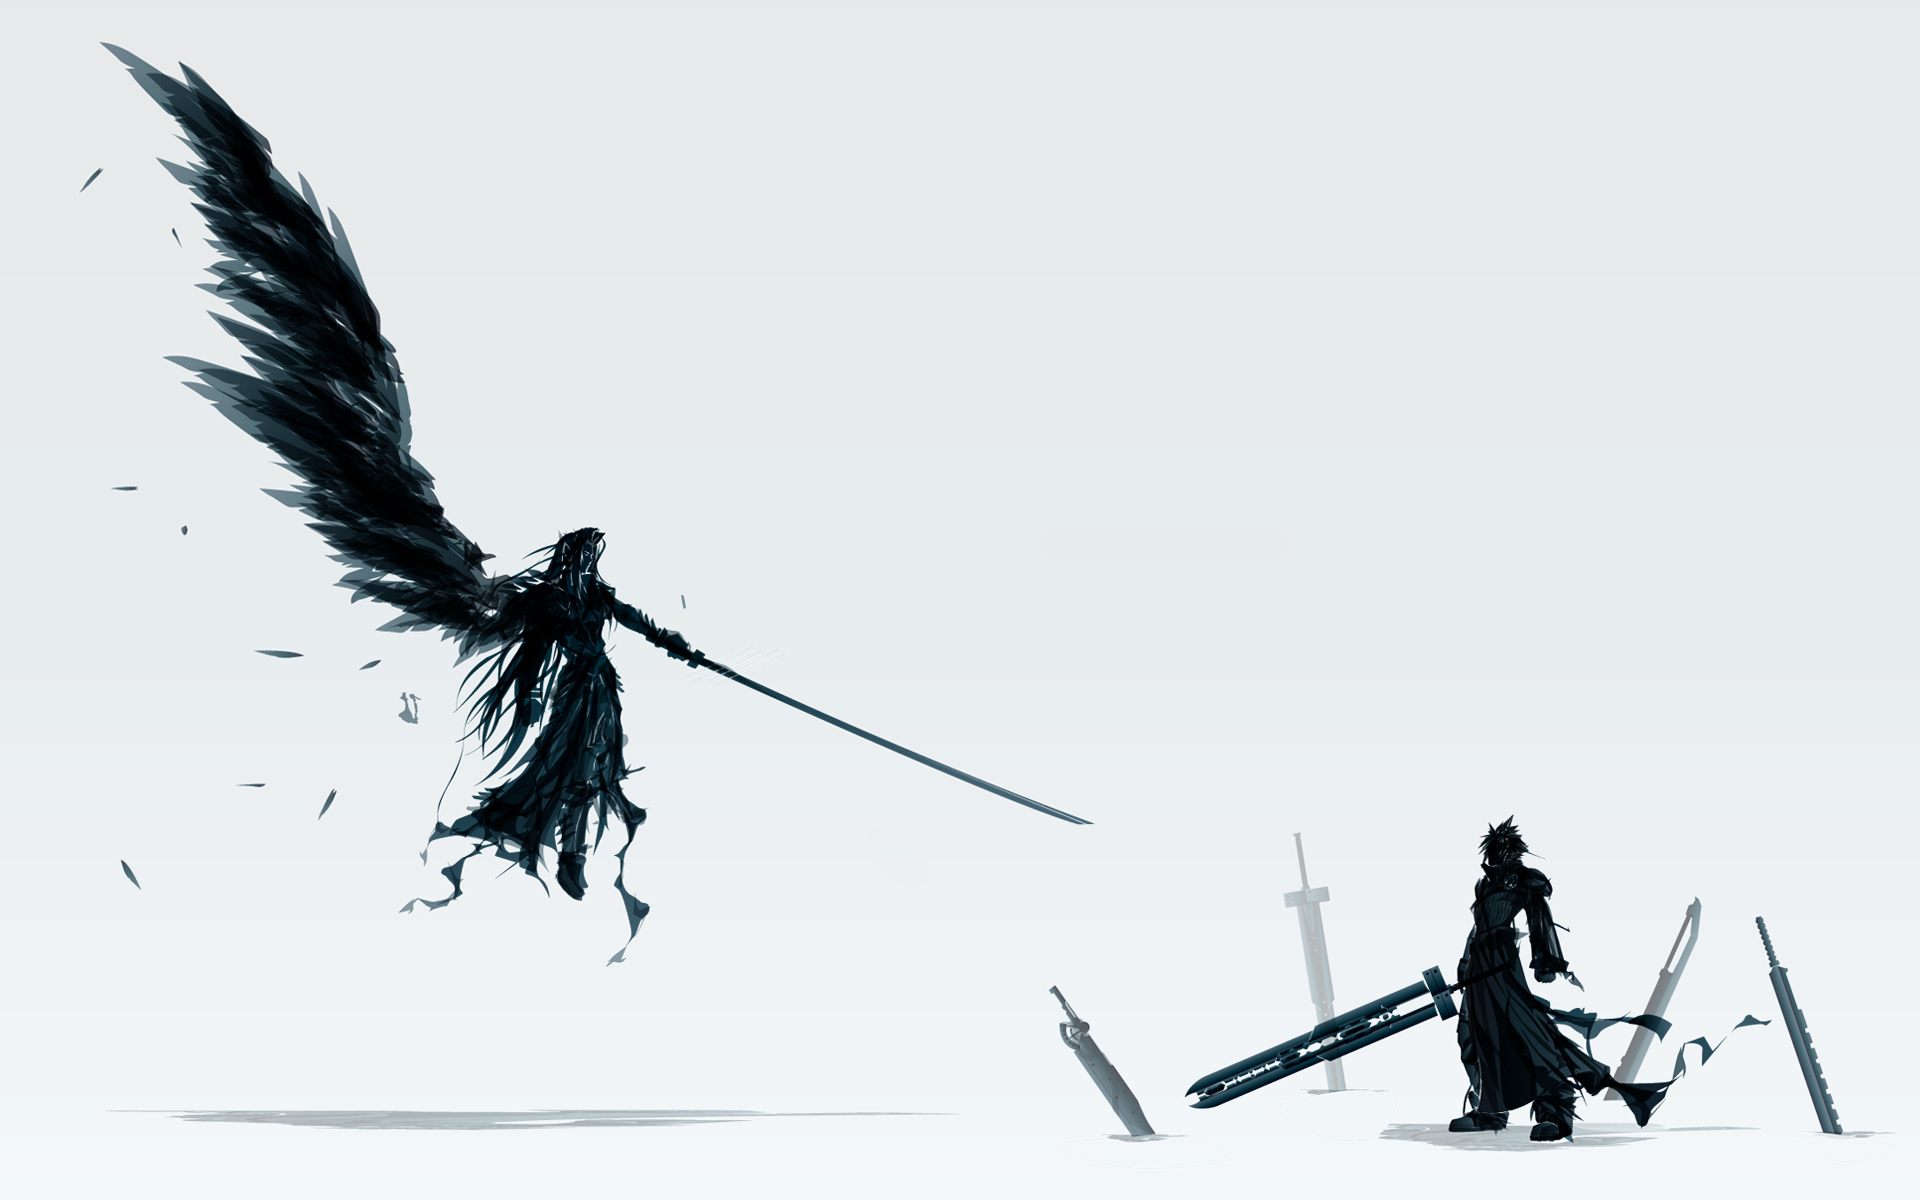 final fantasy vii wallpaper 1920x1200